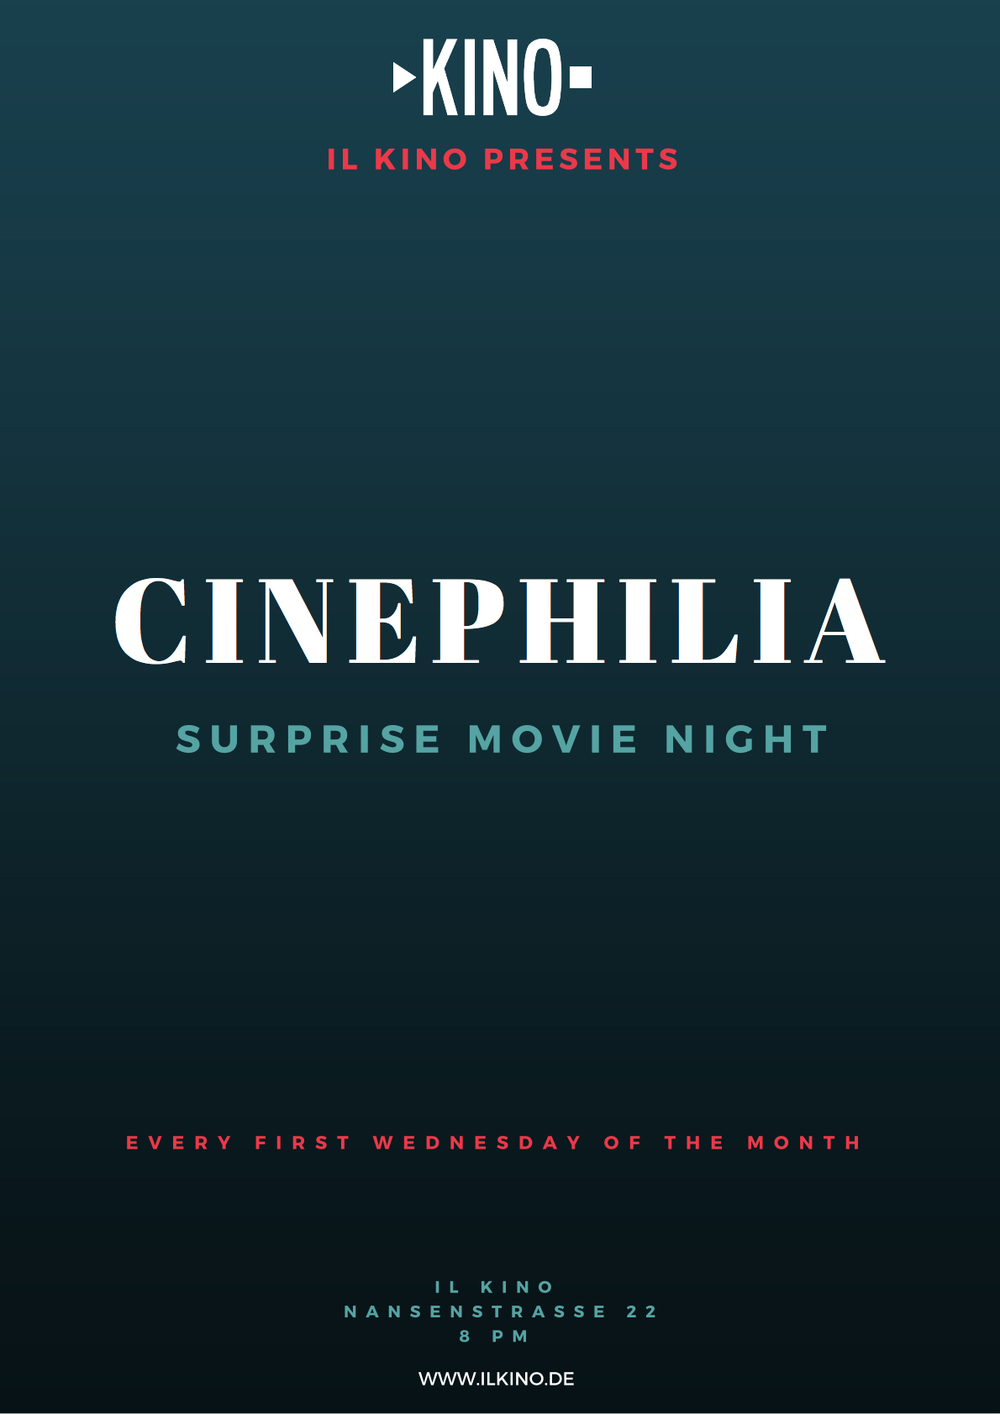 Monthly secret movie night for film lovers!